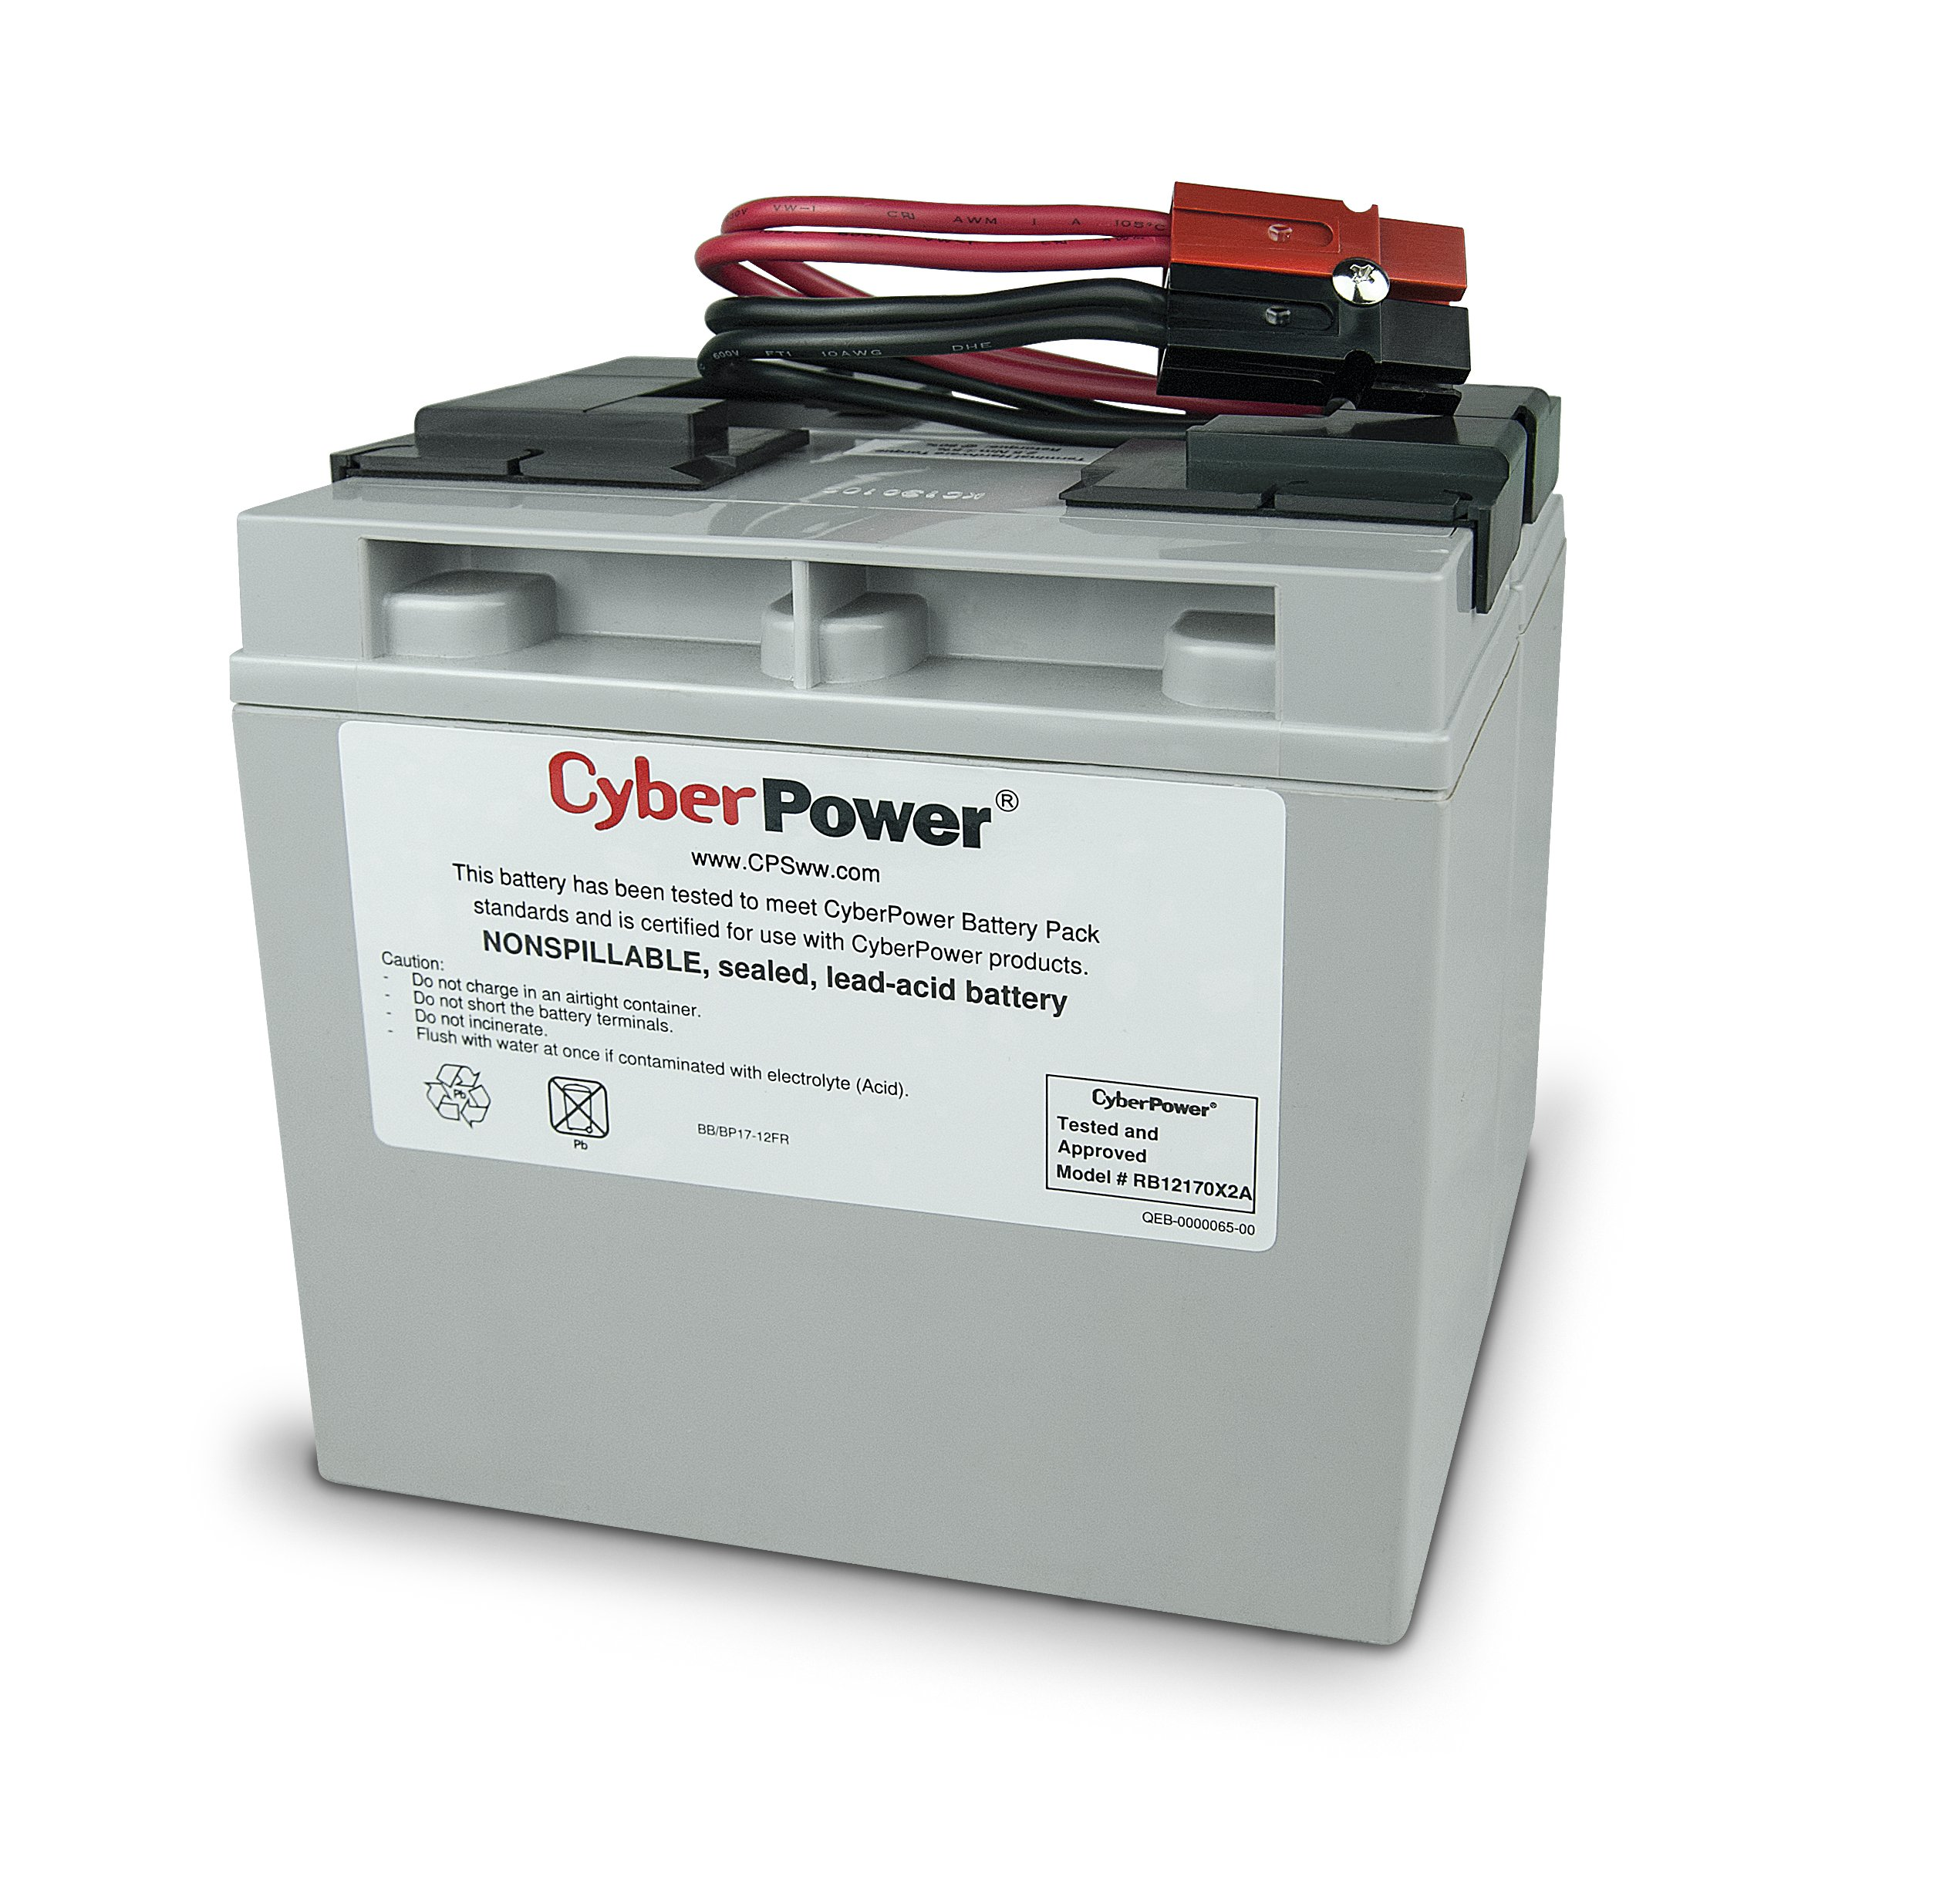 CyberPower RB12170X2A Replacement Battery Cartridge, Maintenance-Free, User Installable